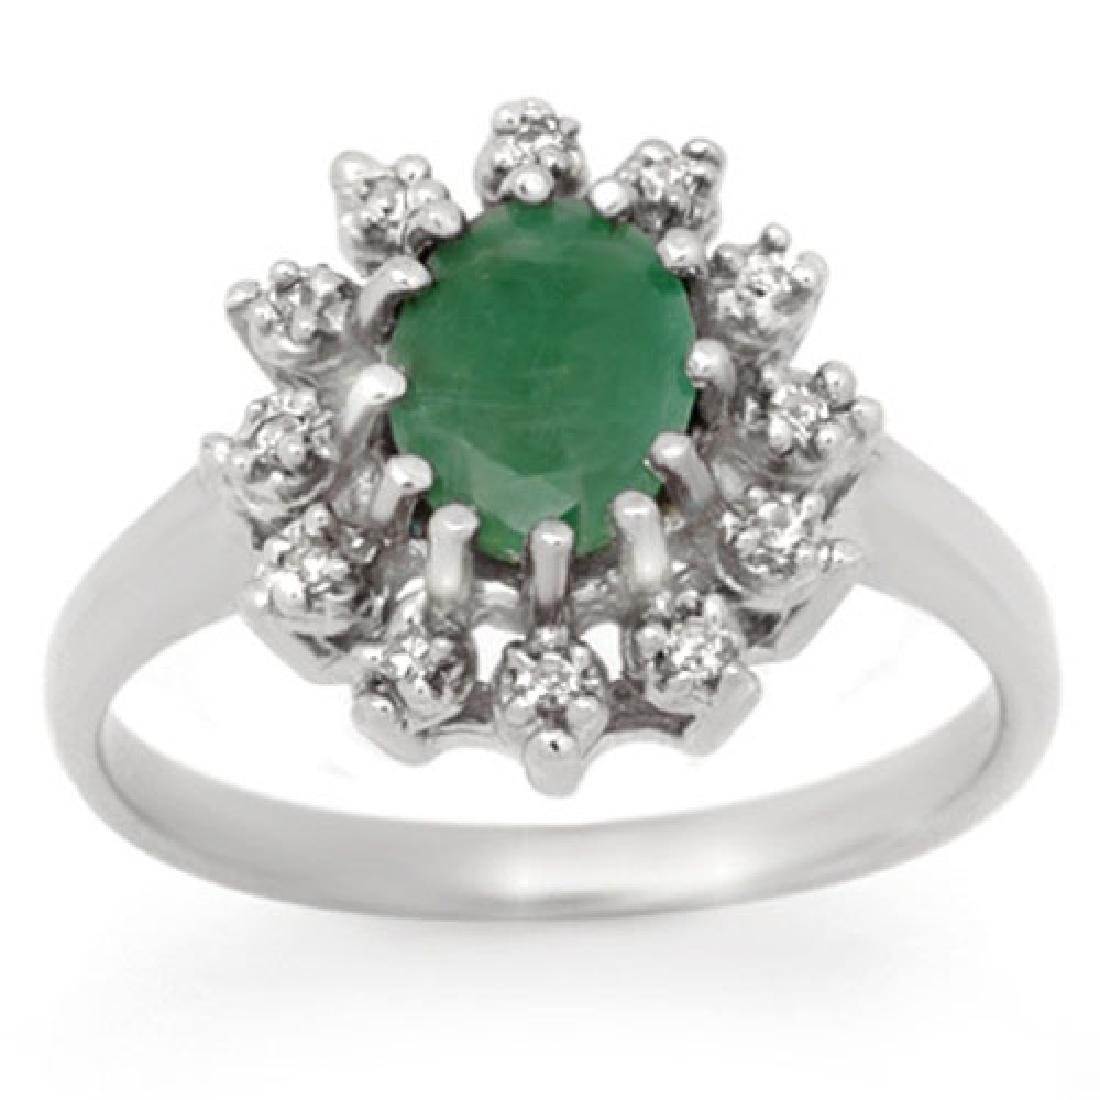 1.46 CTW Emerald & Diamond Ring 10K White Gold